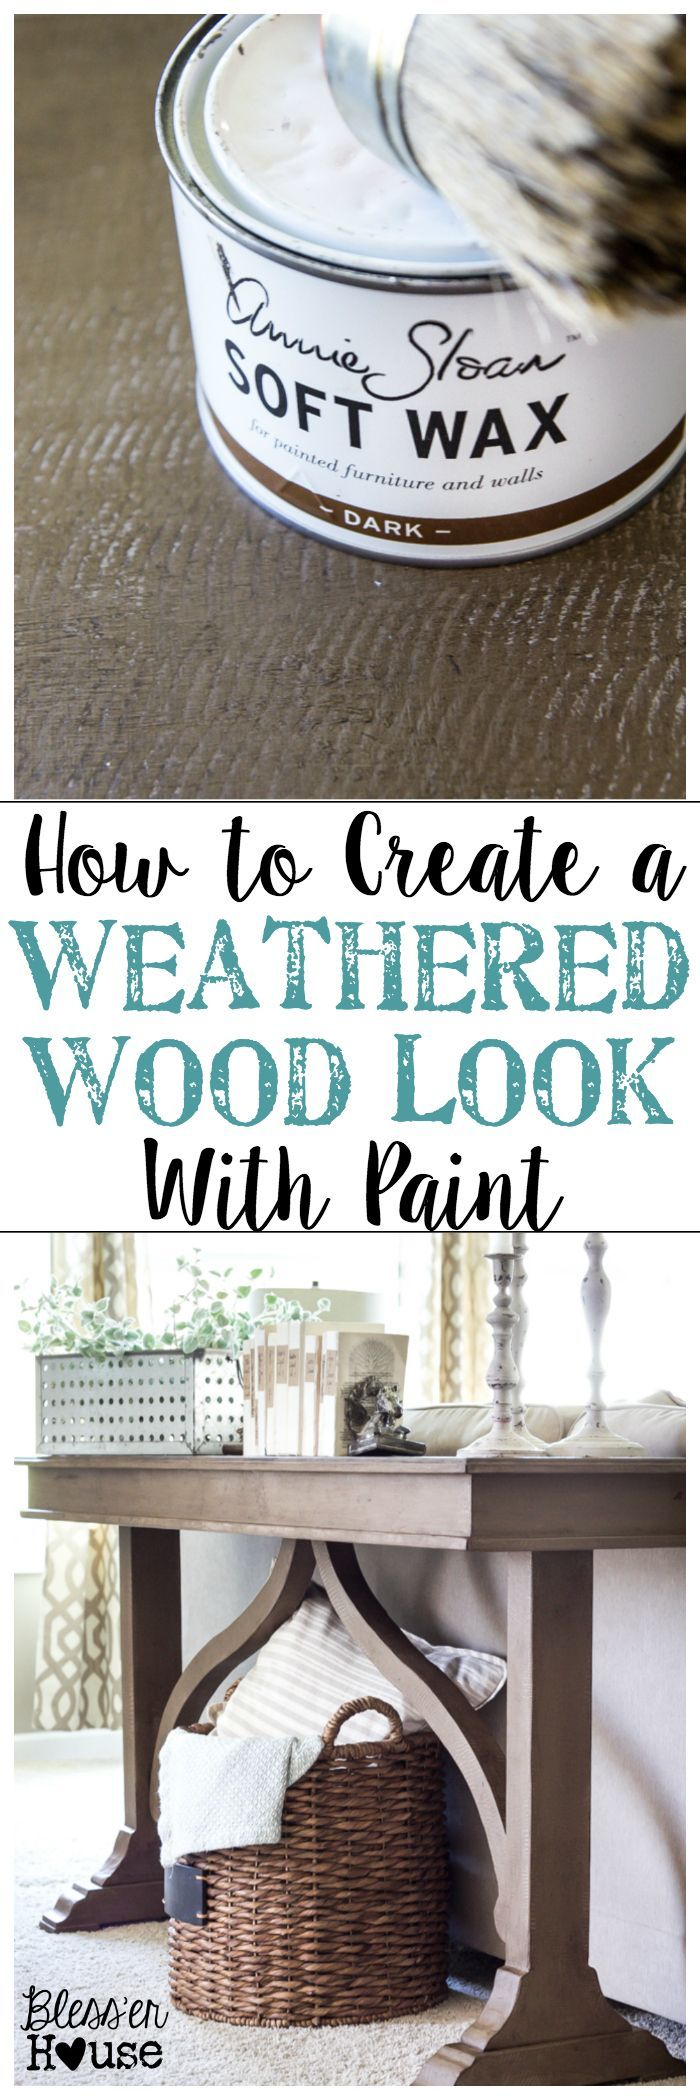 How To Create A Weathered Wood Look With Paint